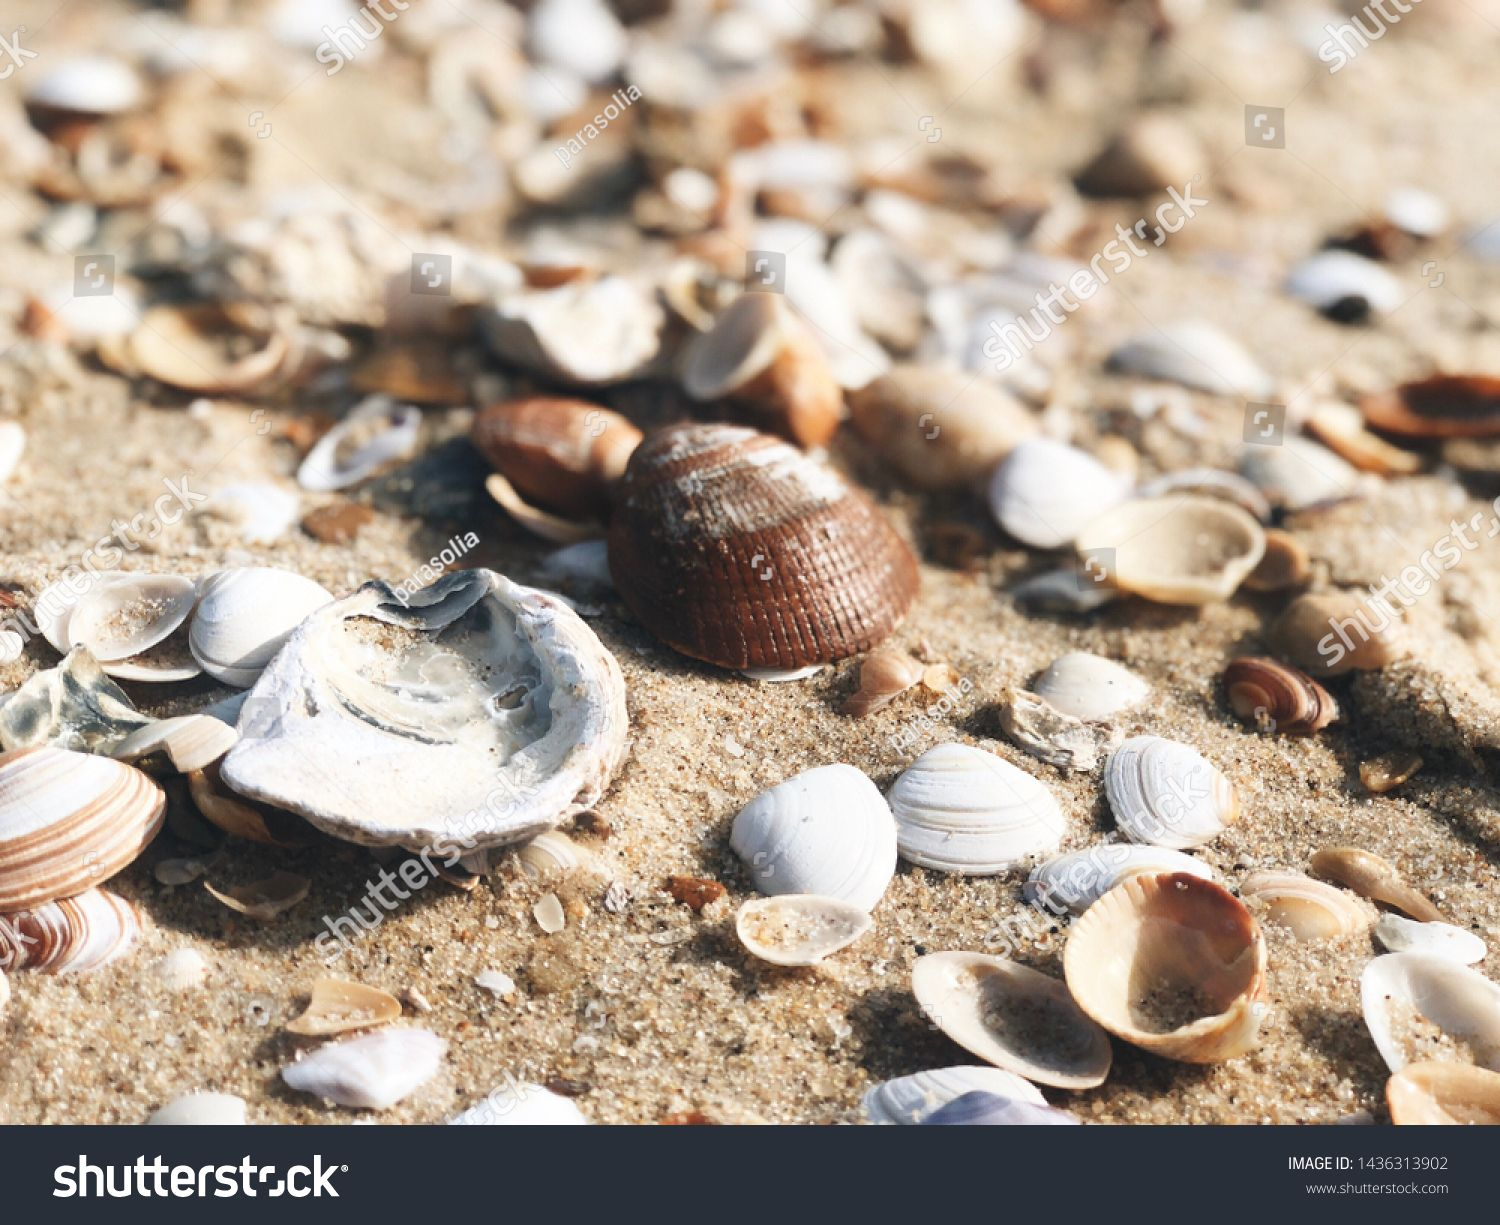 Sea Shells On Sand Close Up For Summer Wallpapers Ad Spon Sand Shells Sea Wallpapers Summer Wallpaper Stock Photos Photo Editing